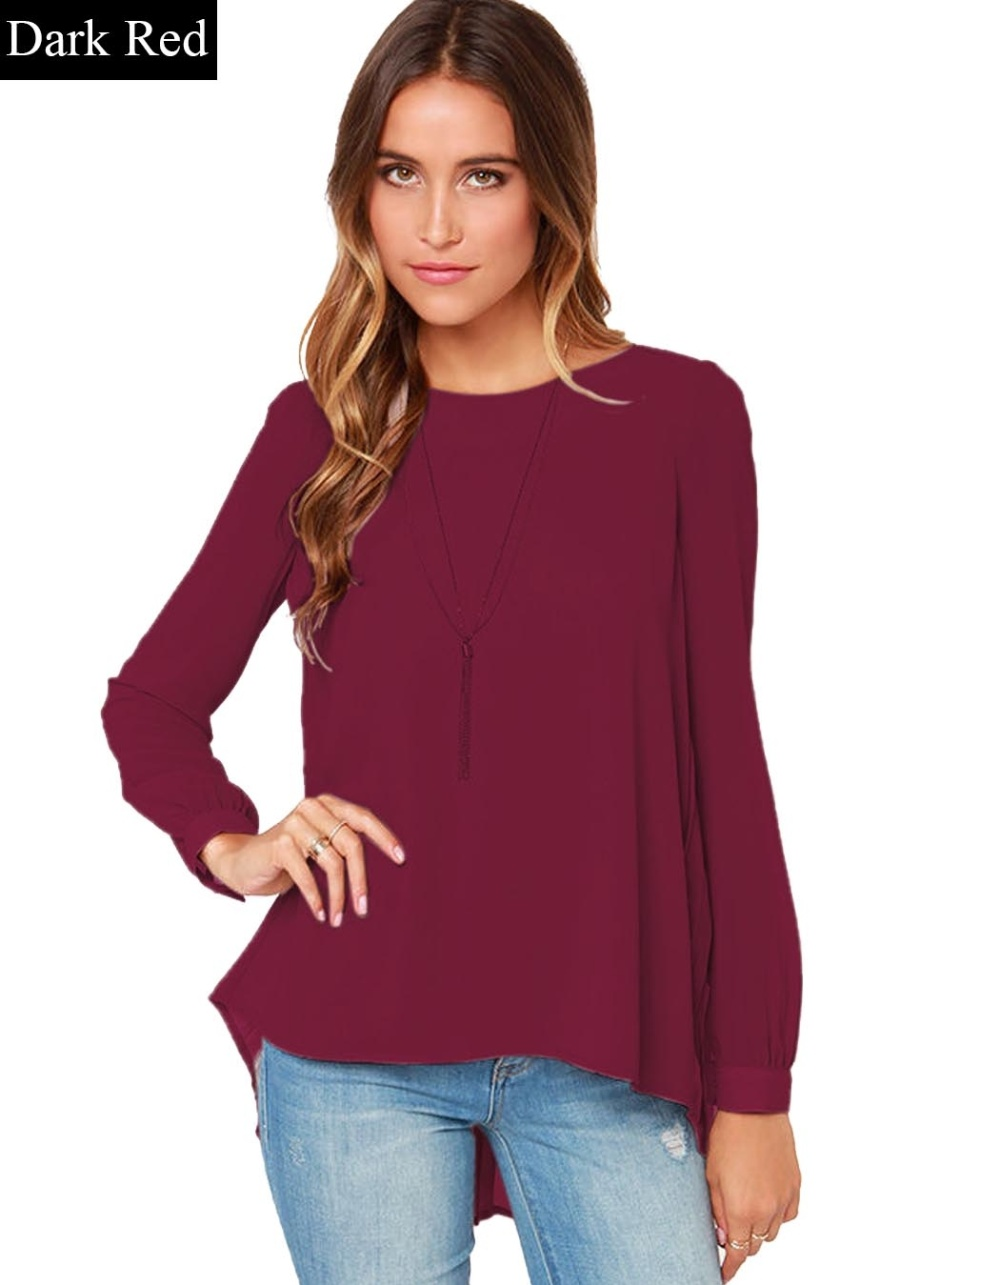 Cyber Stylish Lady Womens Casual Long Sleeve O-neck Loose-fitting ...